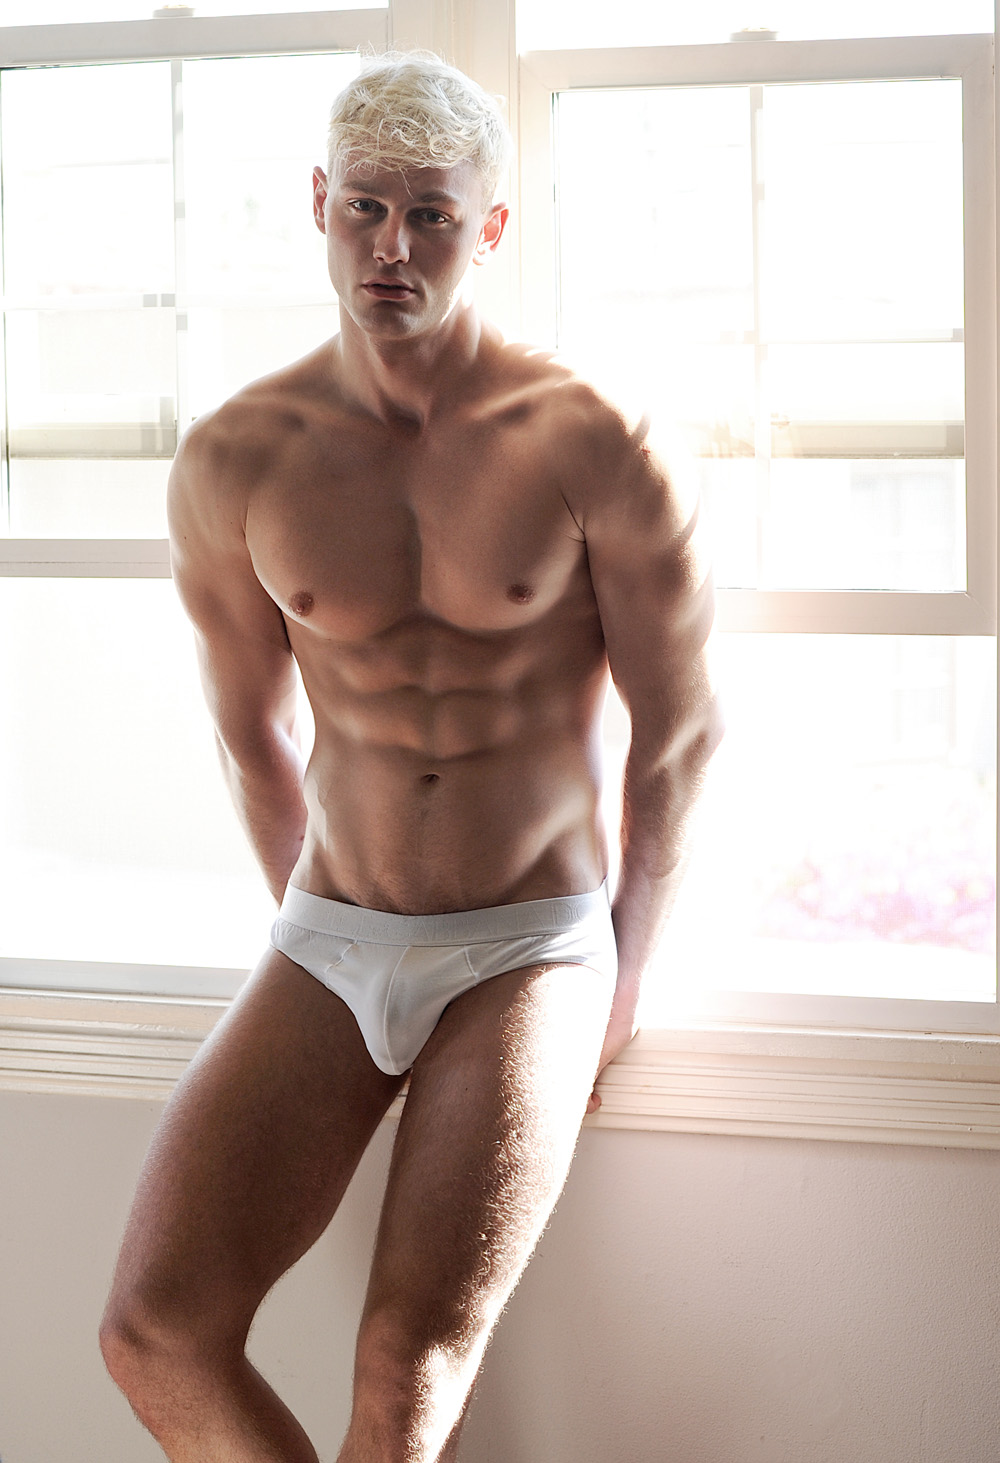 Exclusive for Fashionably Male Laurent Marchand from AIM Models NYC shot in an exclusive by talented Matthew Mitchell.